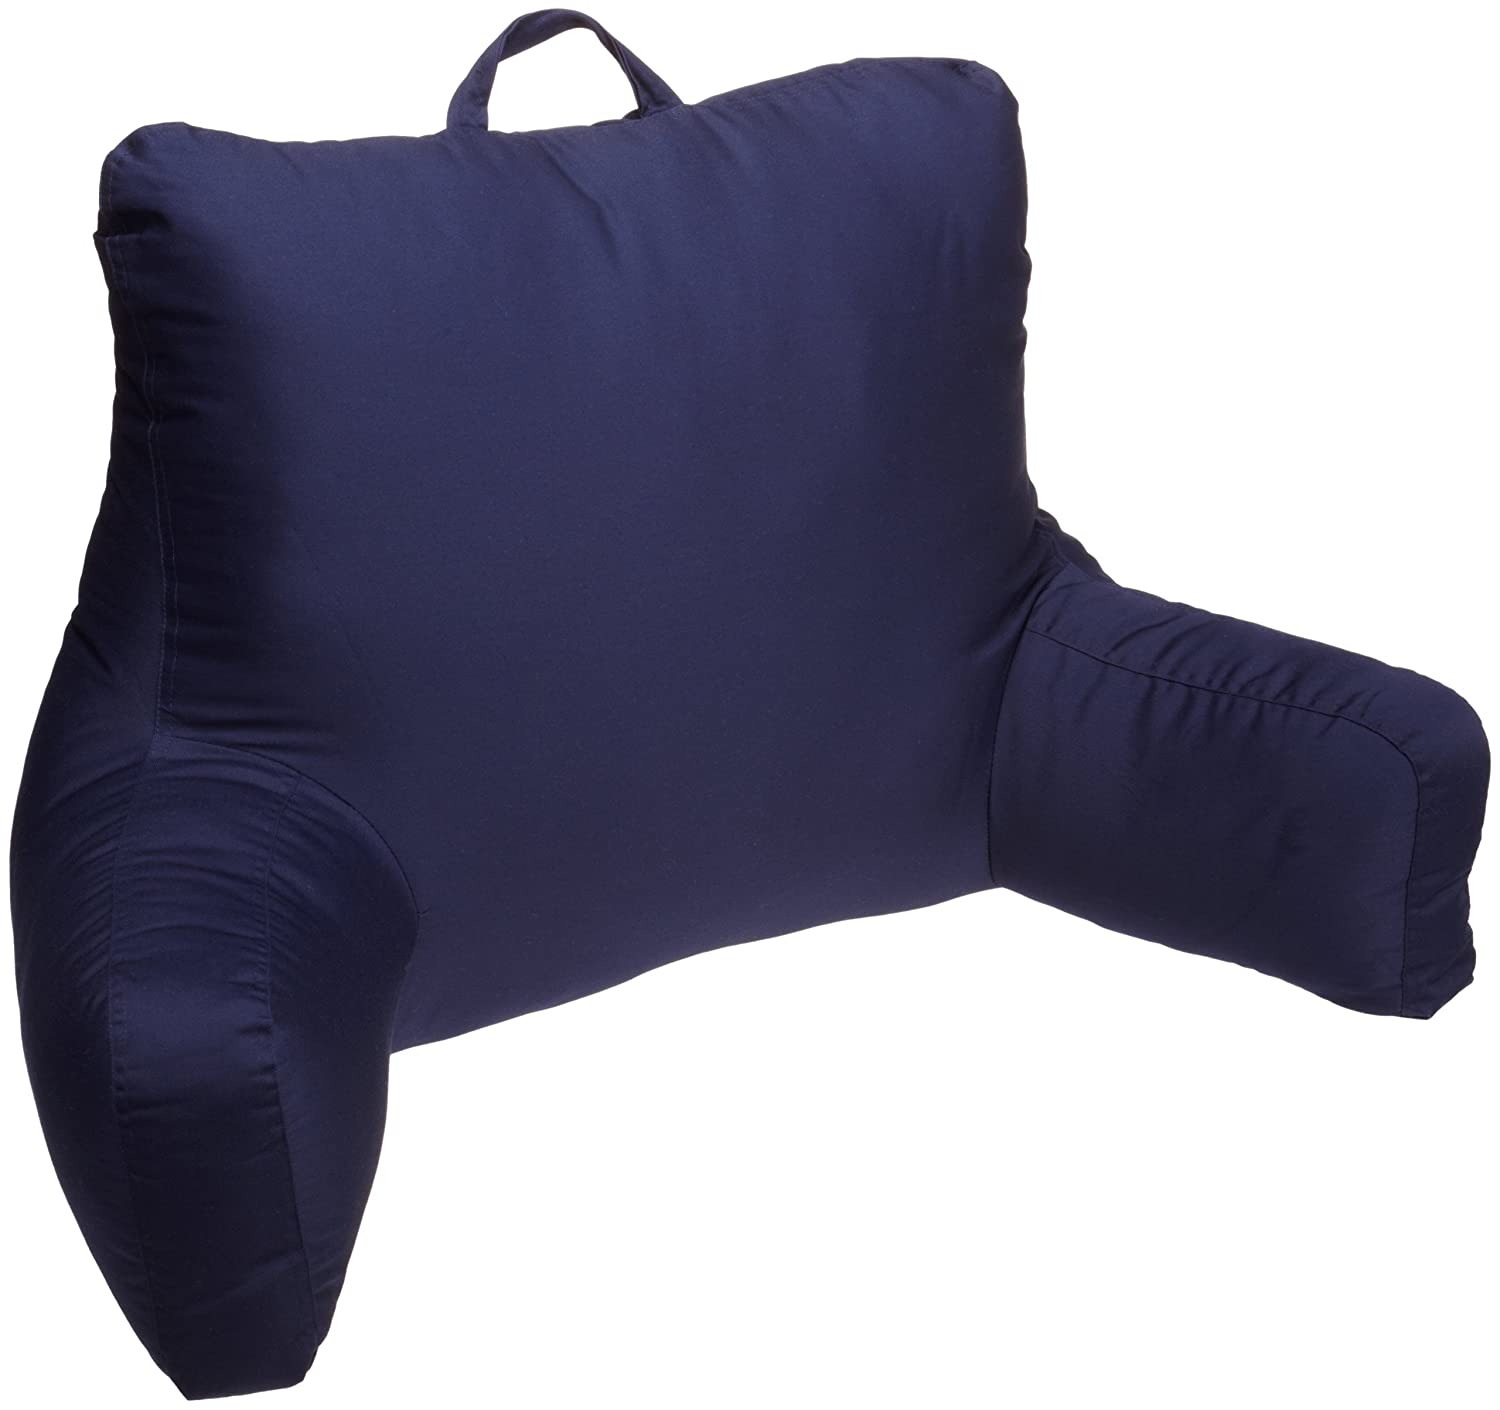 Bed rest pillow walmart - Amazon Com Brentwood Originals Brushed Twill Bedrest Navy Home Kitchen